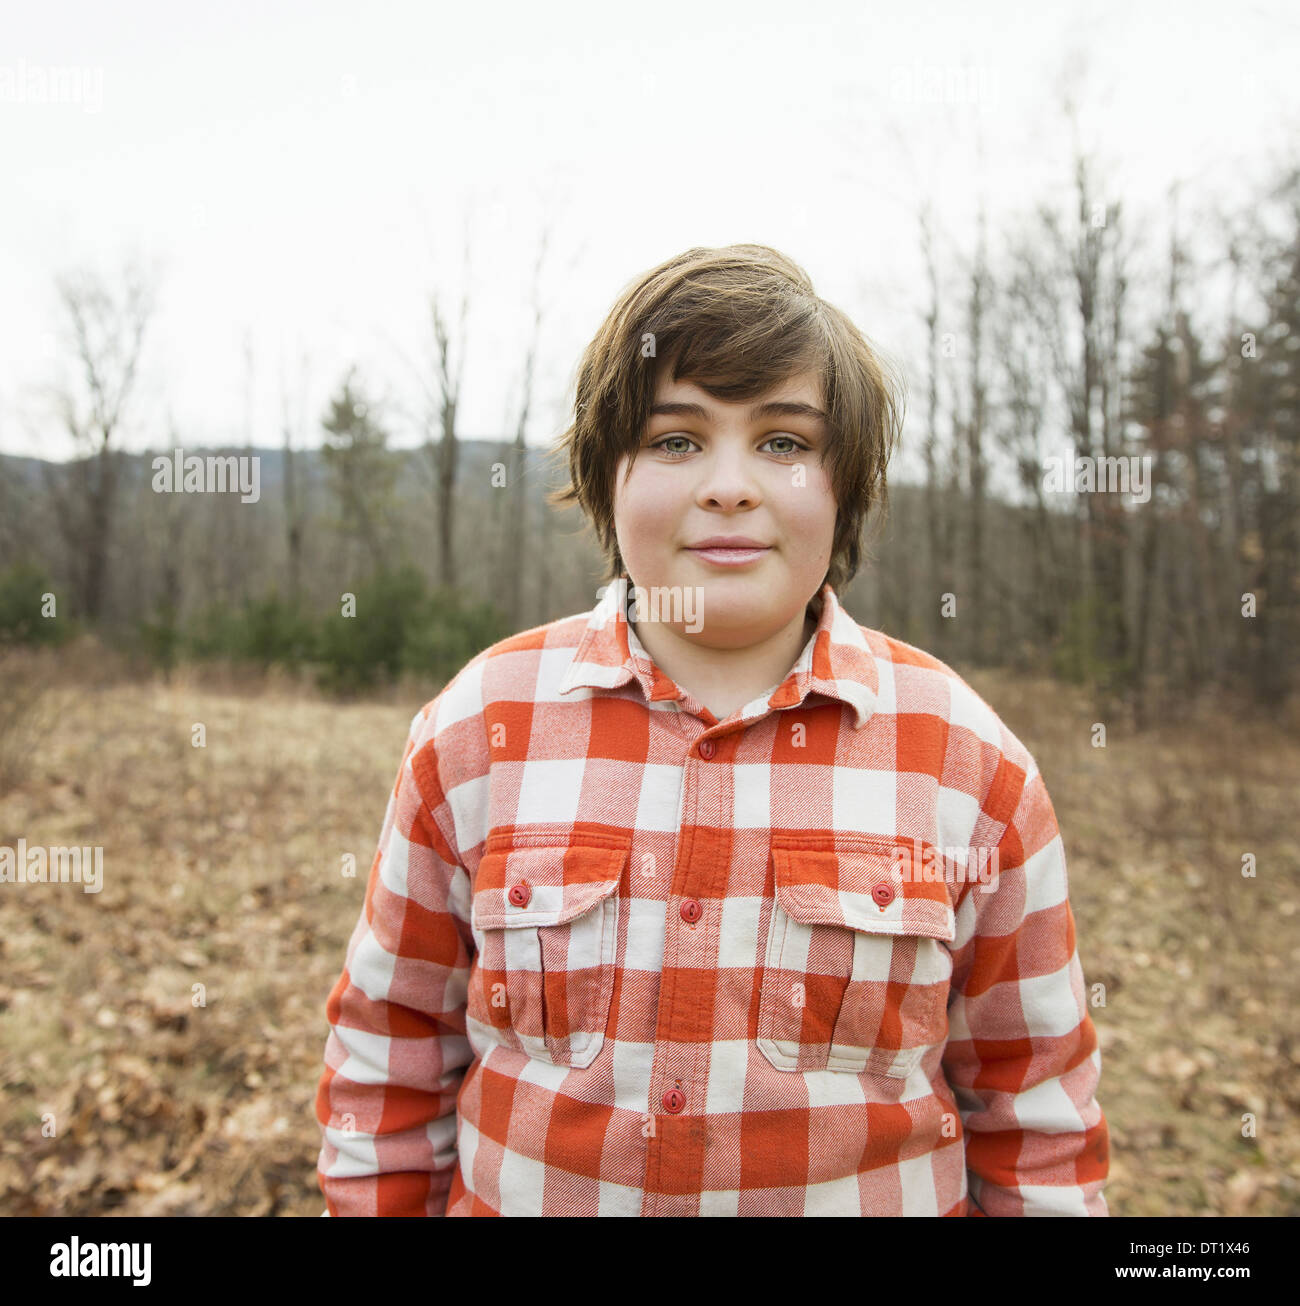 A young boy in a red checked shirt outside on a winter's day - Stock Image